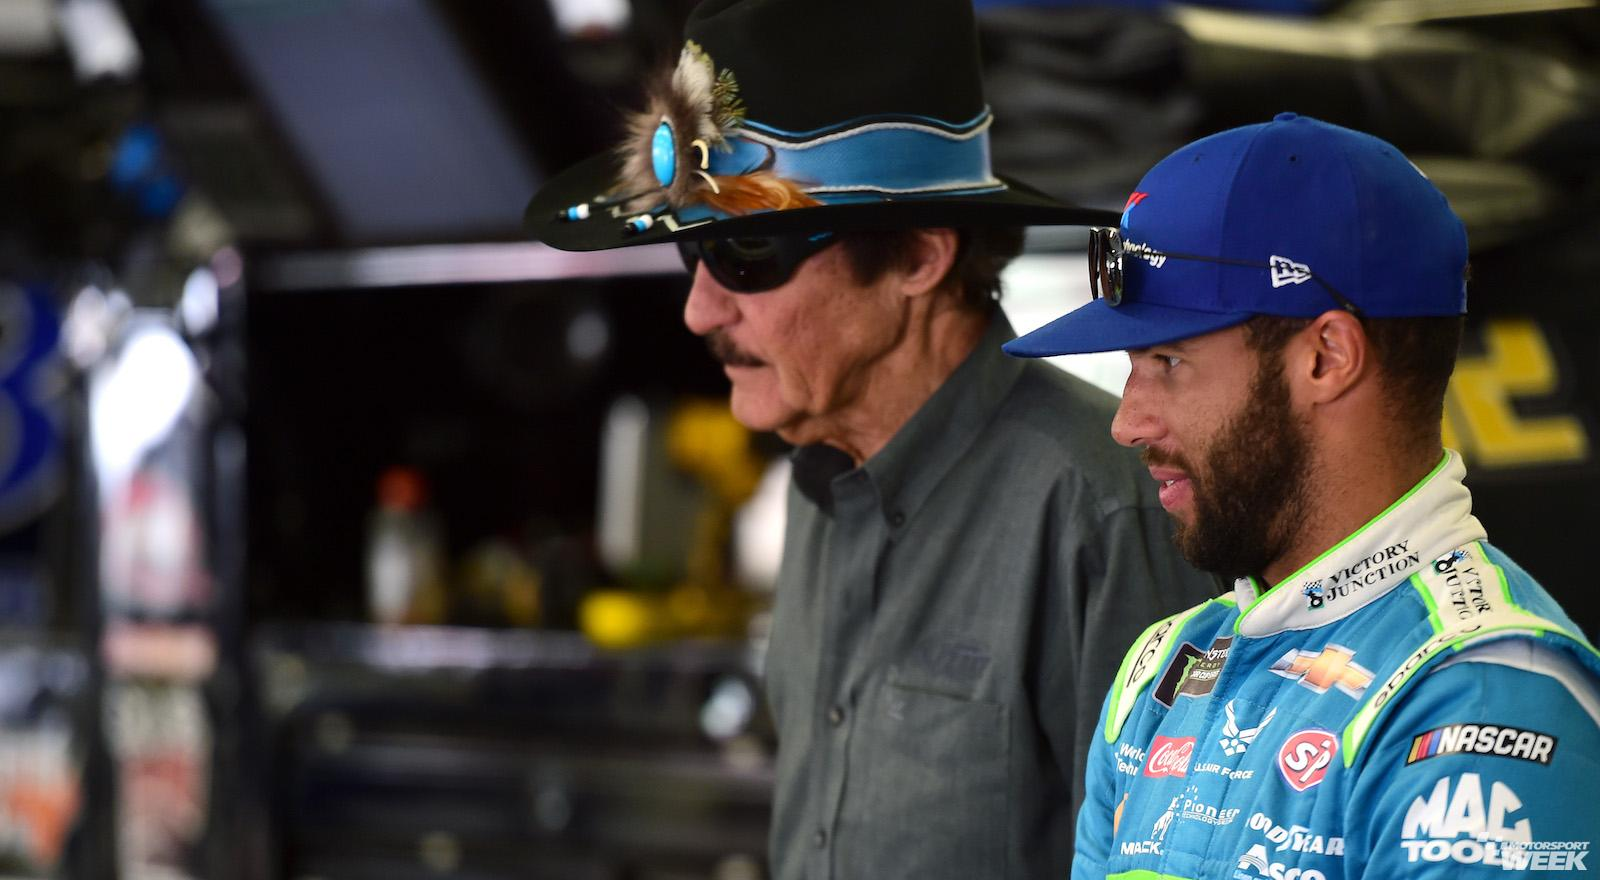 Nascar: Jerry Baxter joins Richard Petty Motorsports, reunites with Darrell Wallace Jr. – Motorsport Week